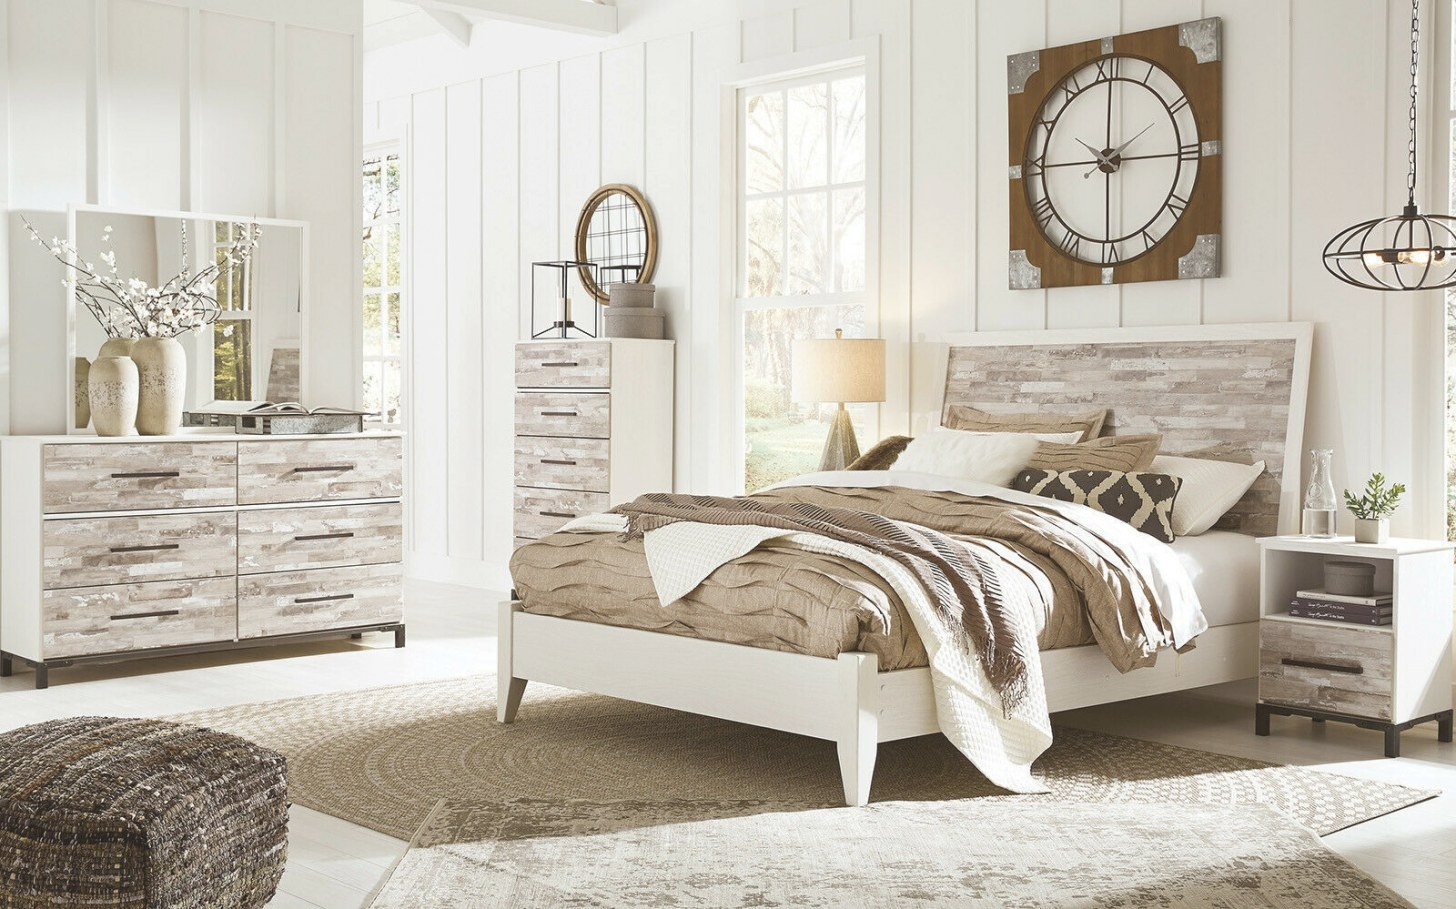 Dante 5 Pieces Modern Cottage Rustic White Wood Queen King intended for White And Wood Bedroom